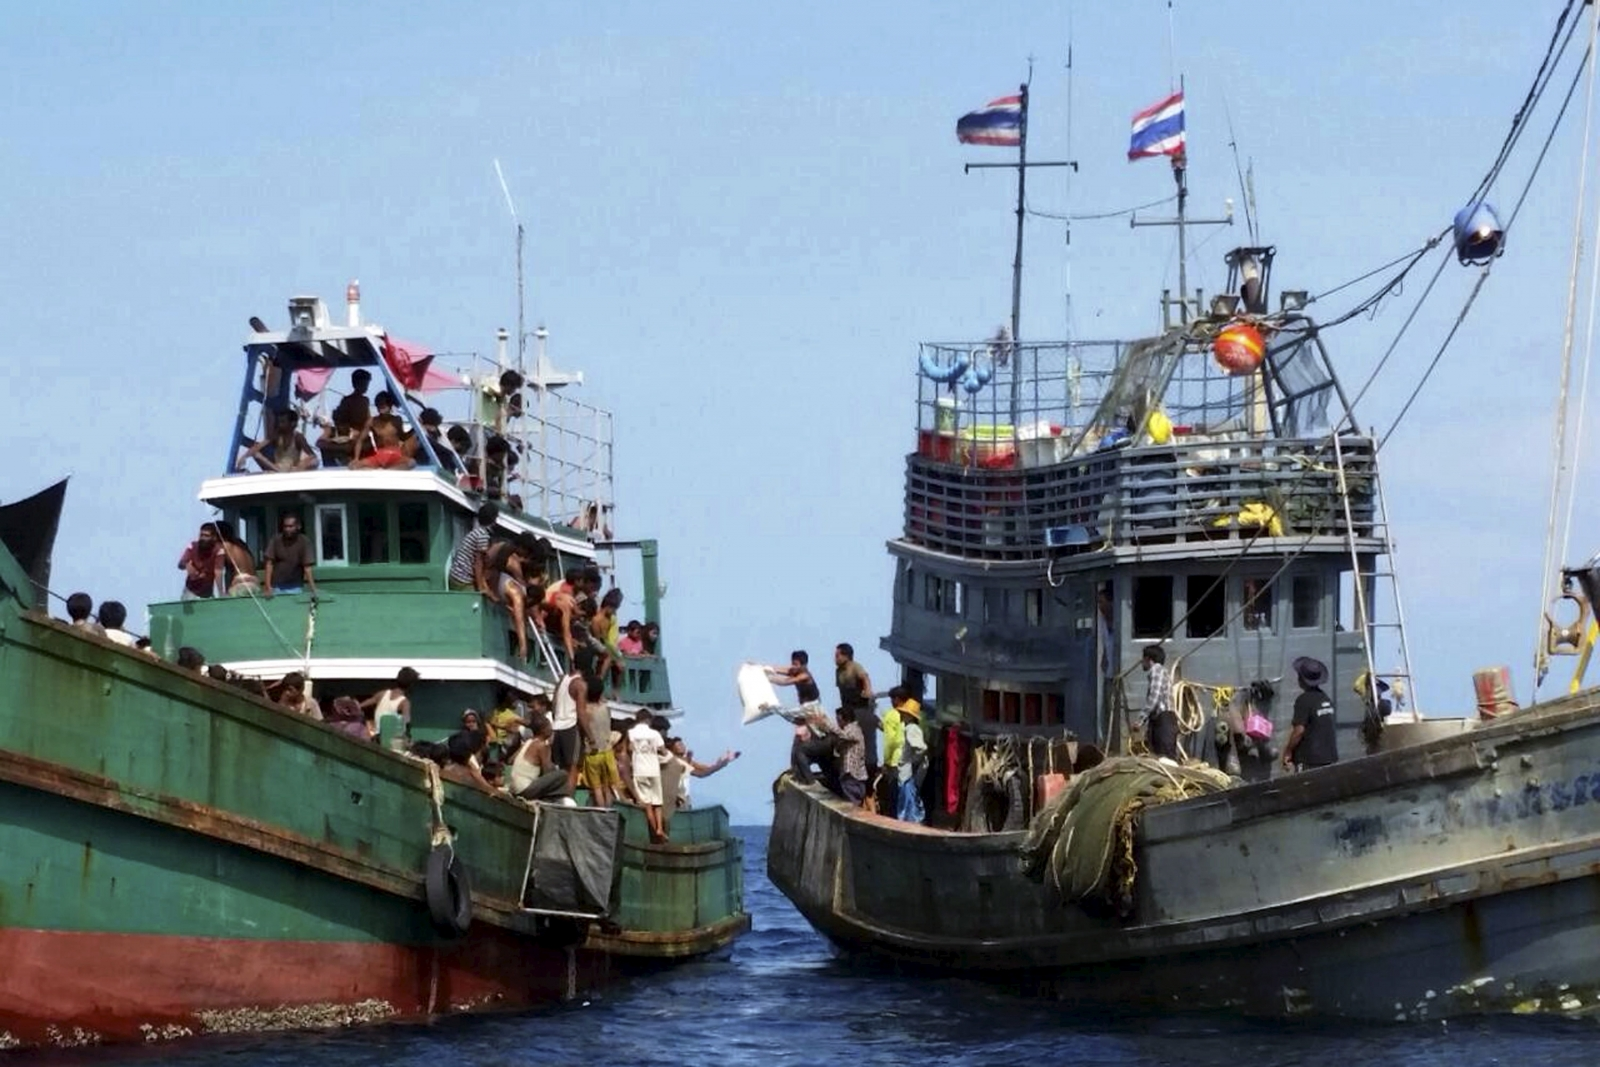 South east Asia migrant crisis